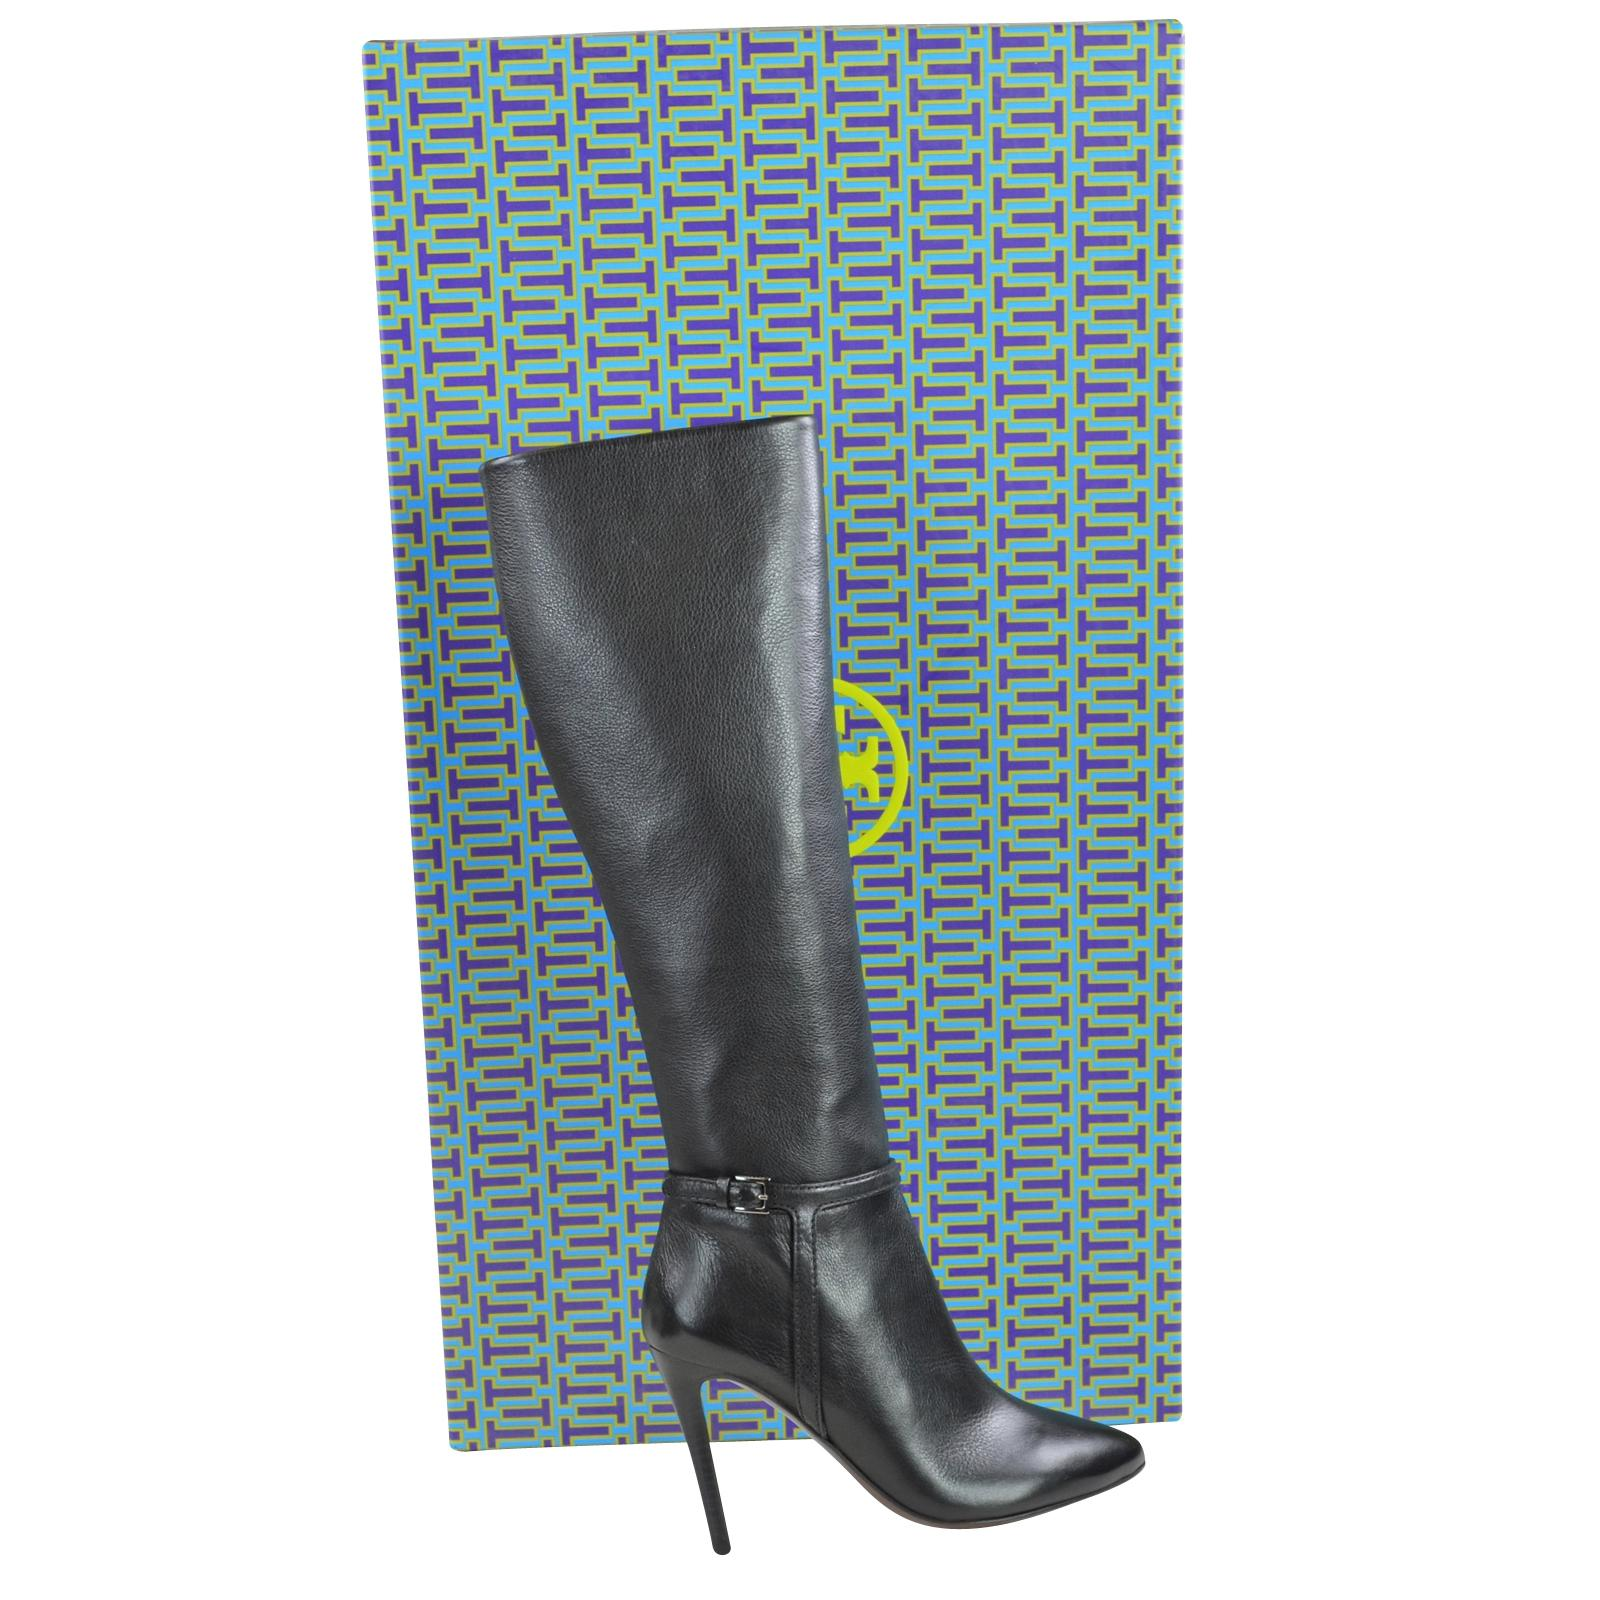 Tory Burch Black Mari 100mm Stiletto Tumbled Leather Boots/Booties Size US 6.5 Regular (M, B)